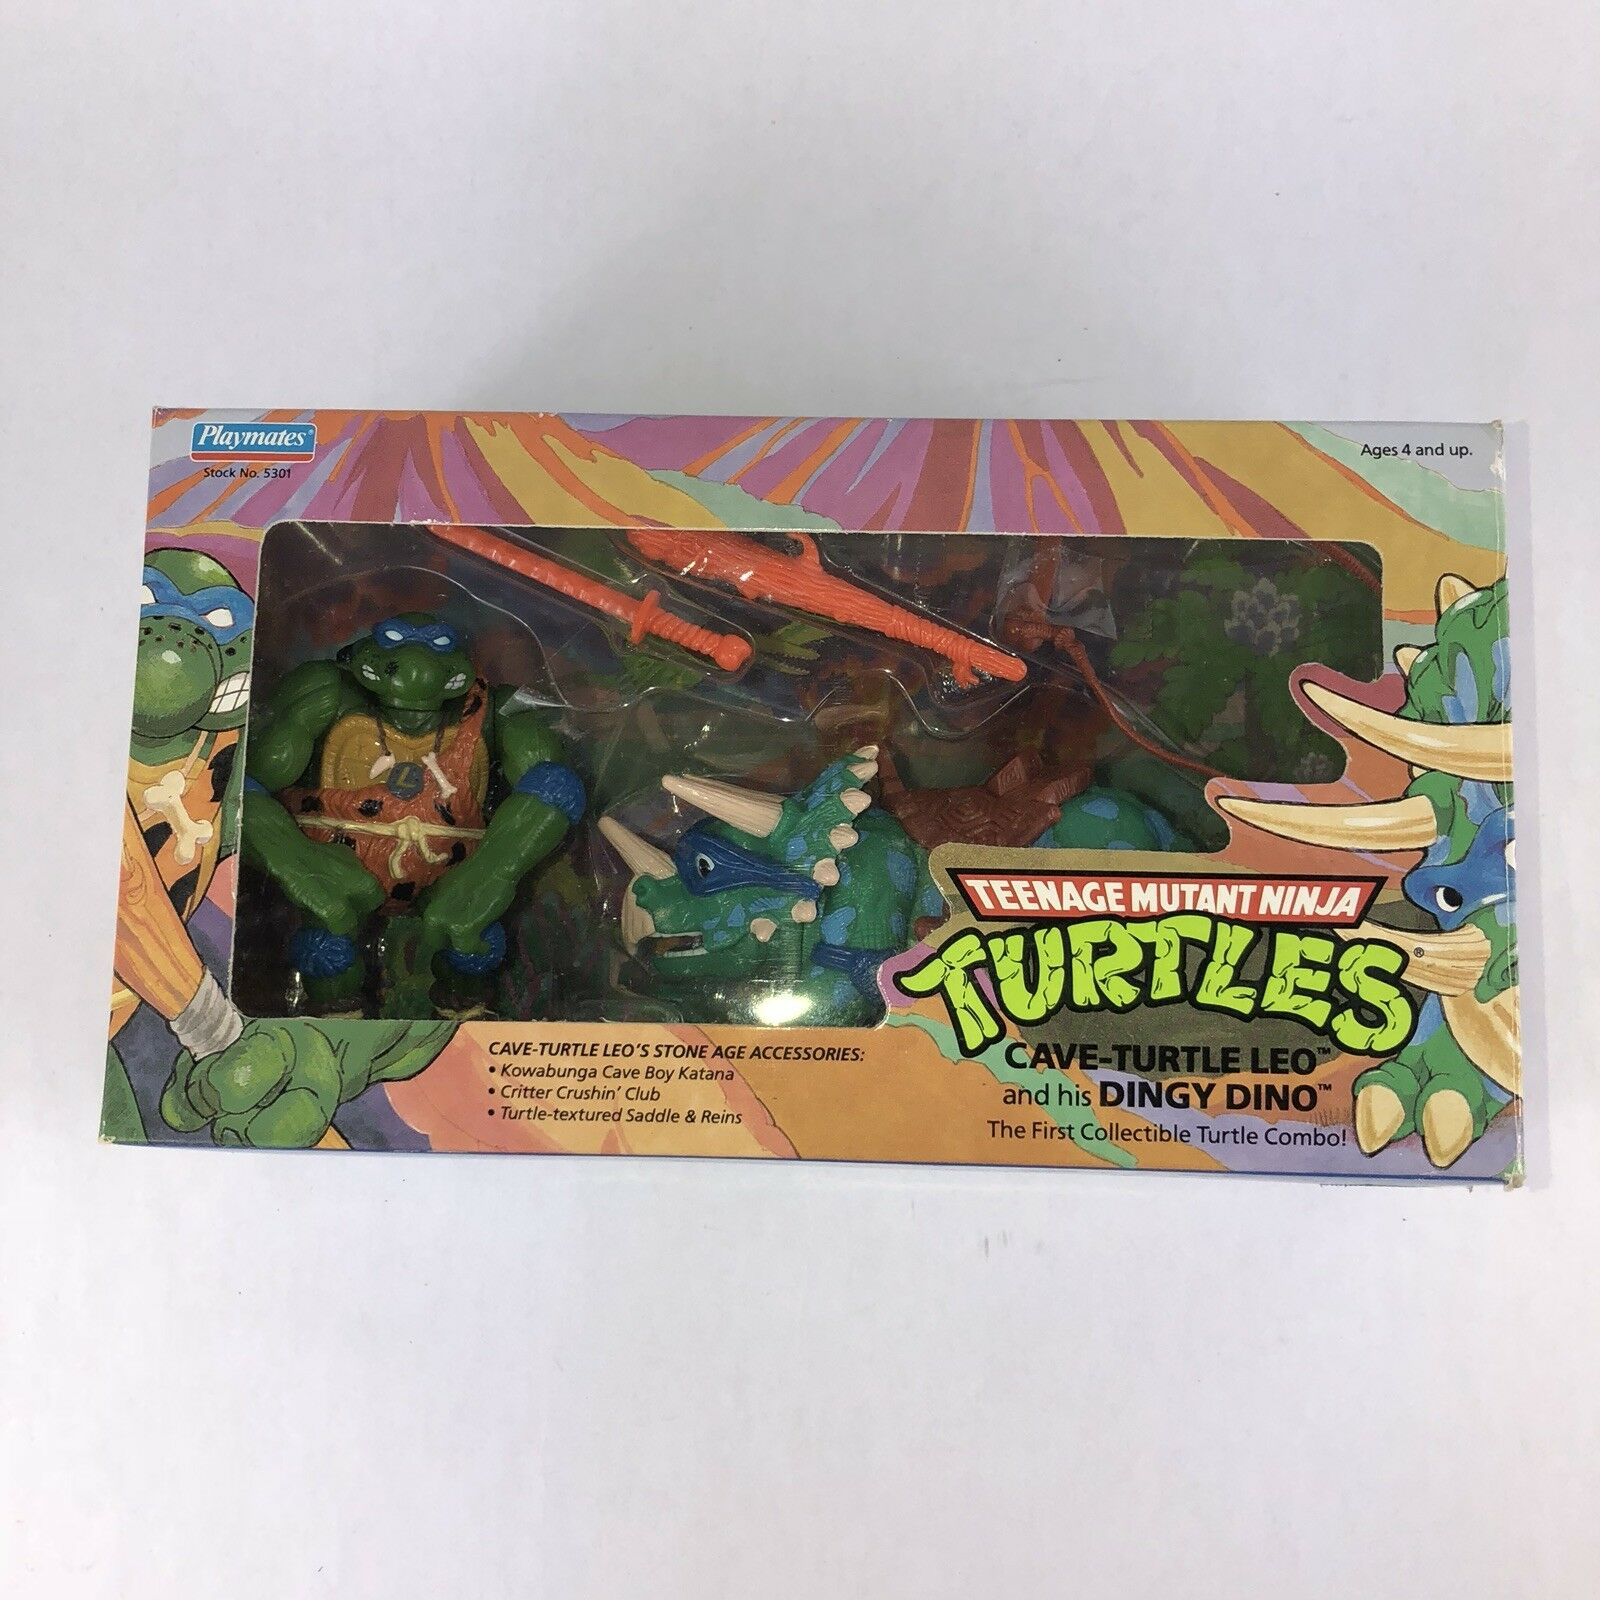 1992 Cave-Turtle Leo & Dingy Dino TMNT Teenage Mutant Ninja Turtles New